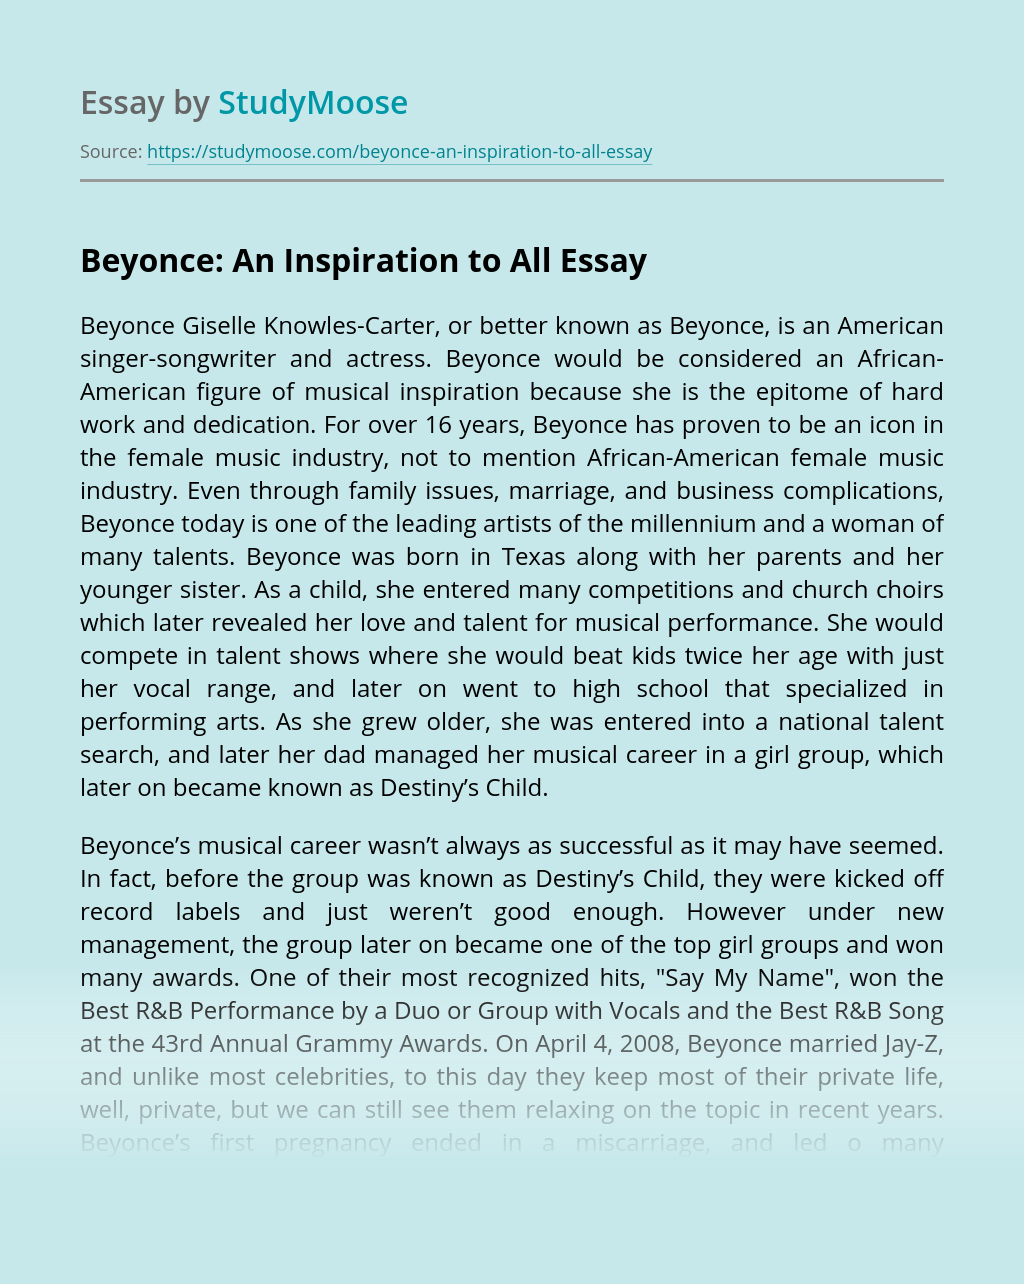 ?Beyonce: An Inspiration to All